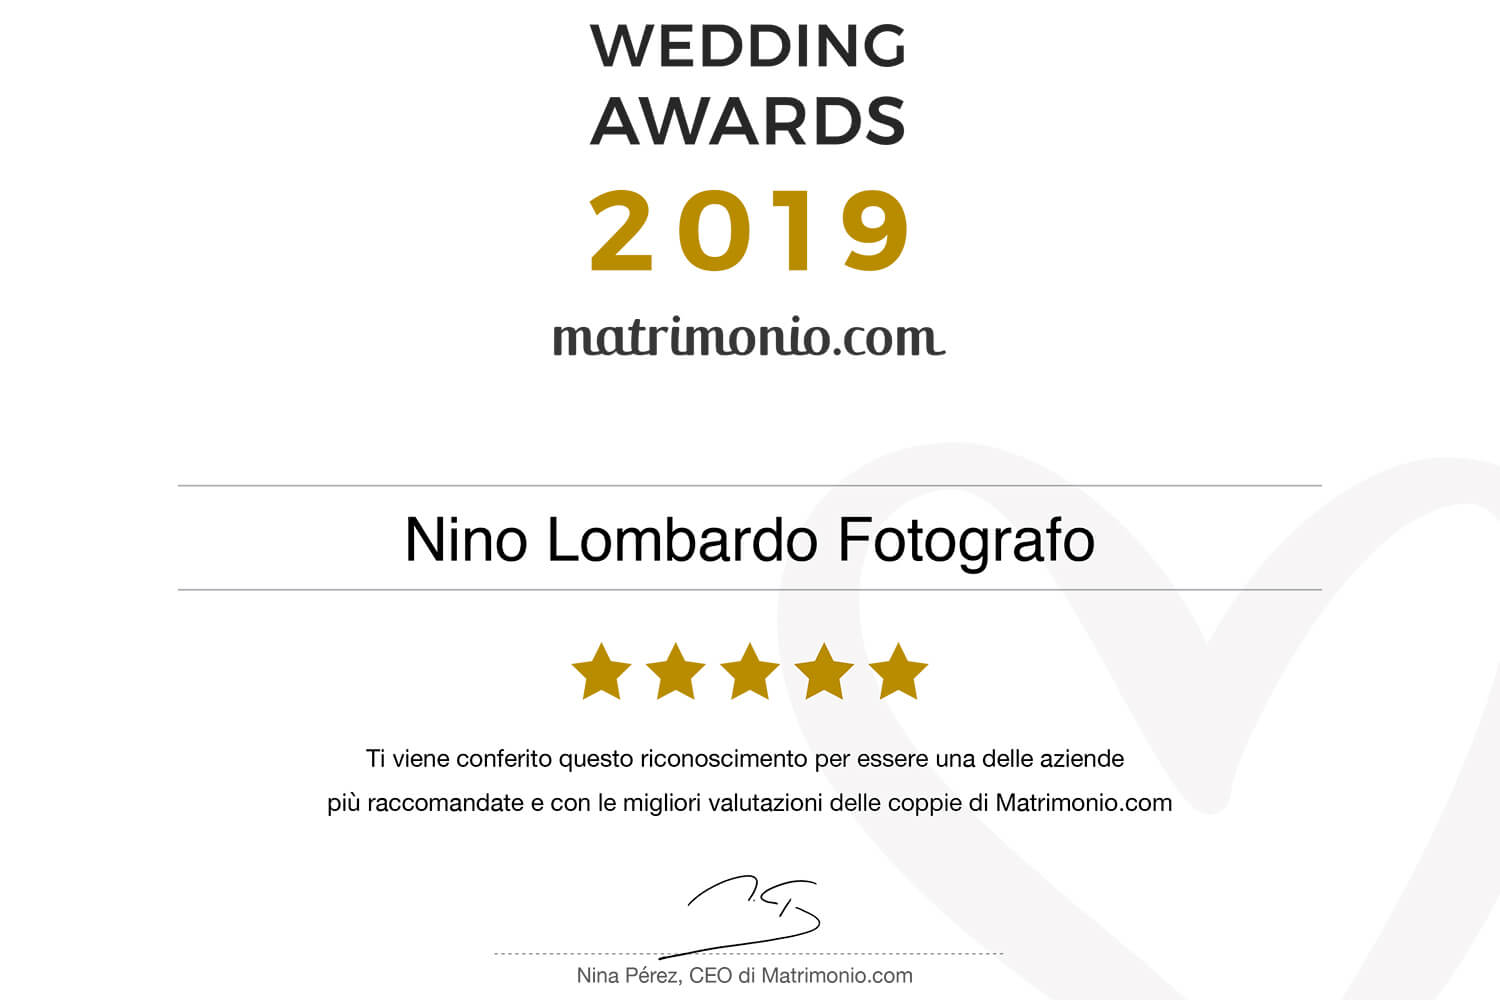 Best Reviews Award Recognition Photographer recommended newlyweds matrimonio.com